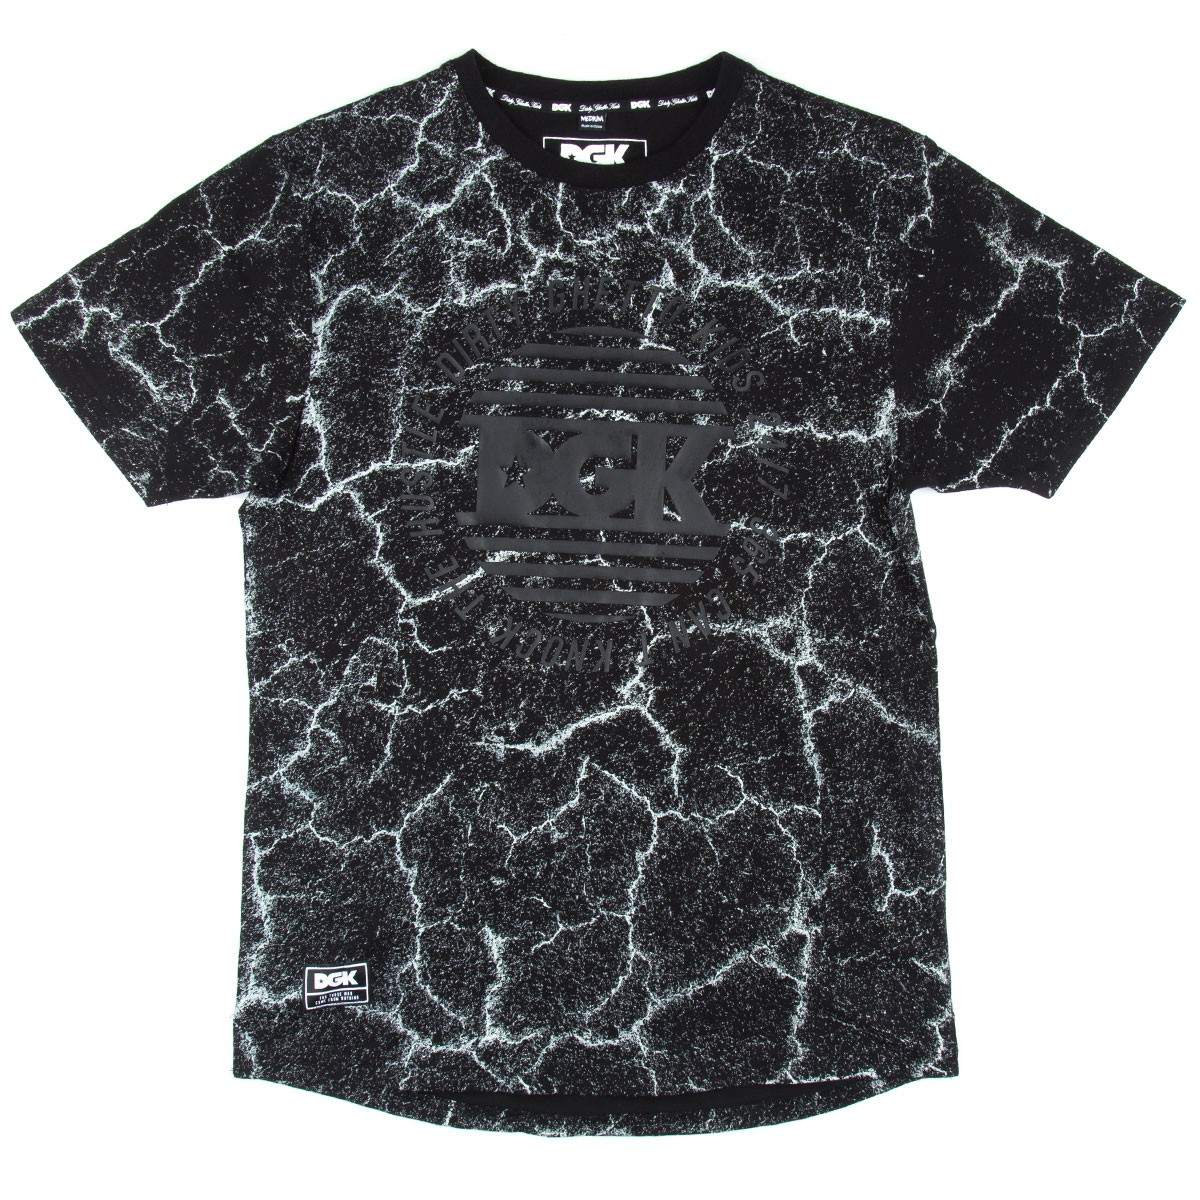 DGK Blacktop Custom T-Shirt - Black